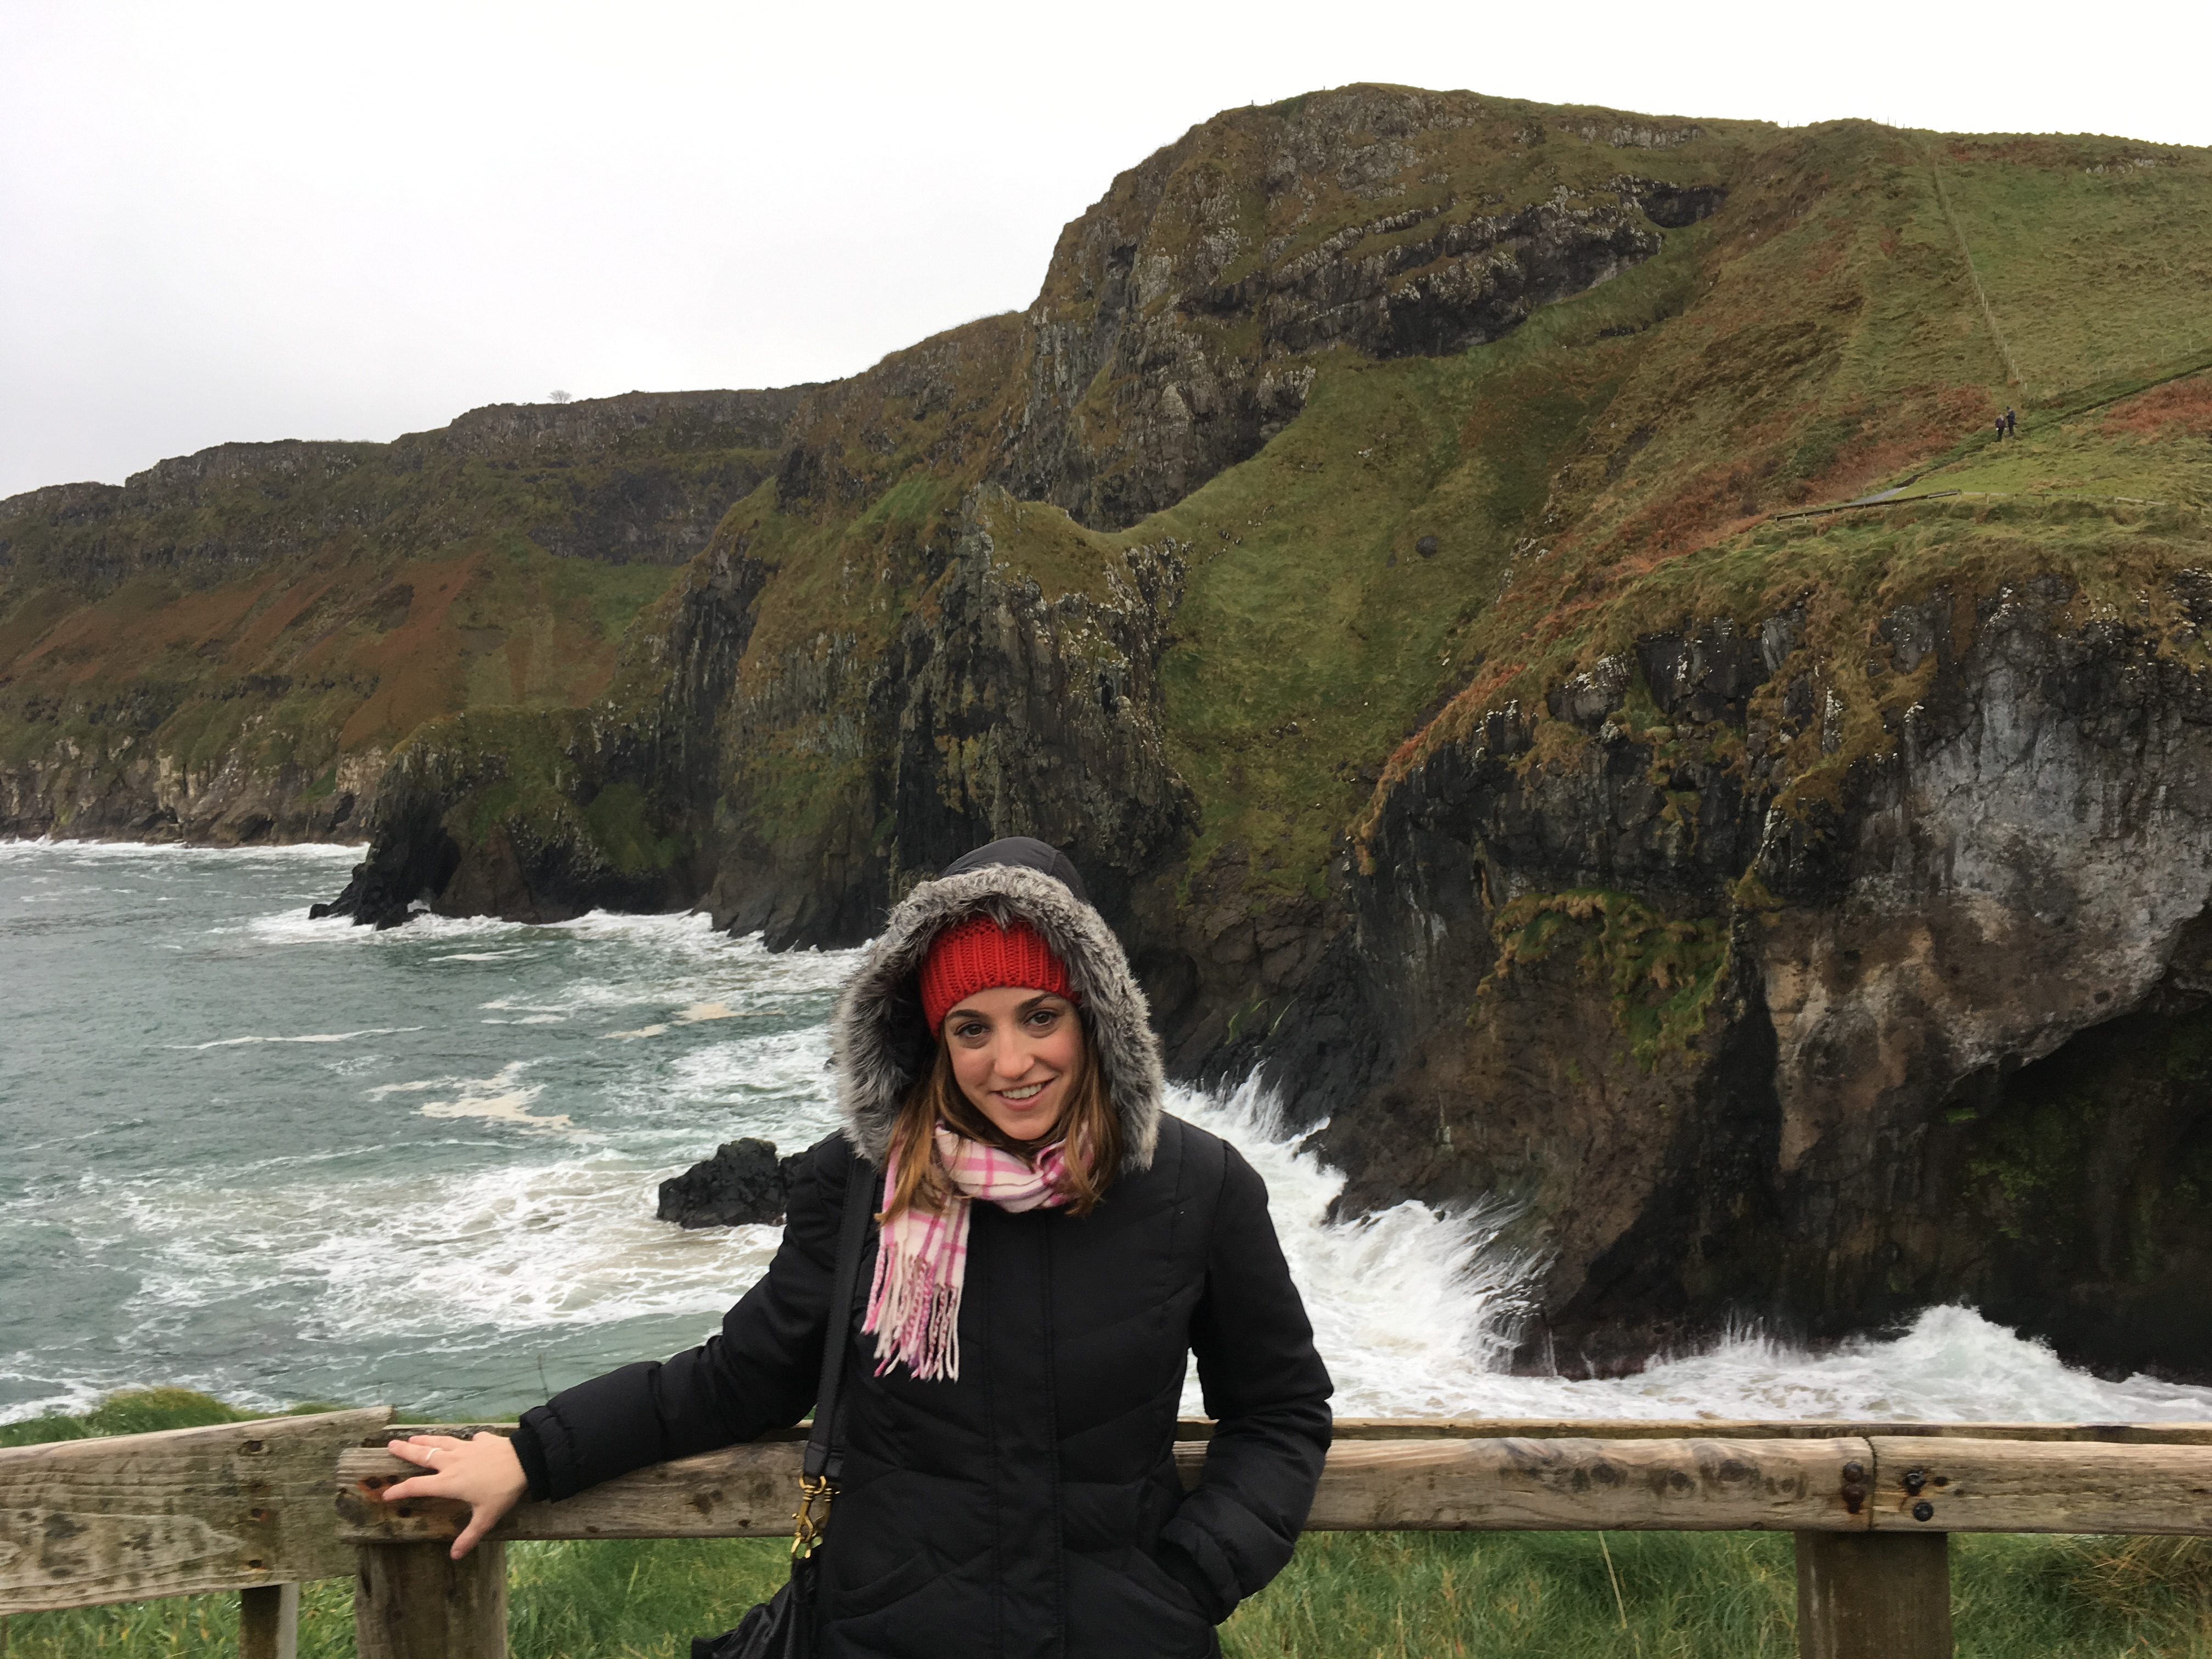 Here's Katie in Northern Ireland. Why is she touching this fence so awkwardly? Unclear.